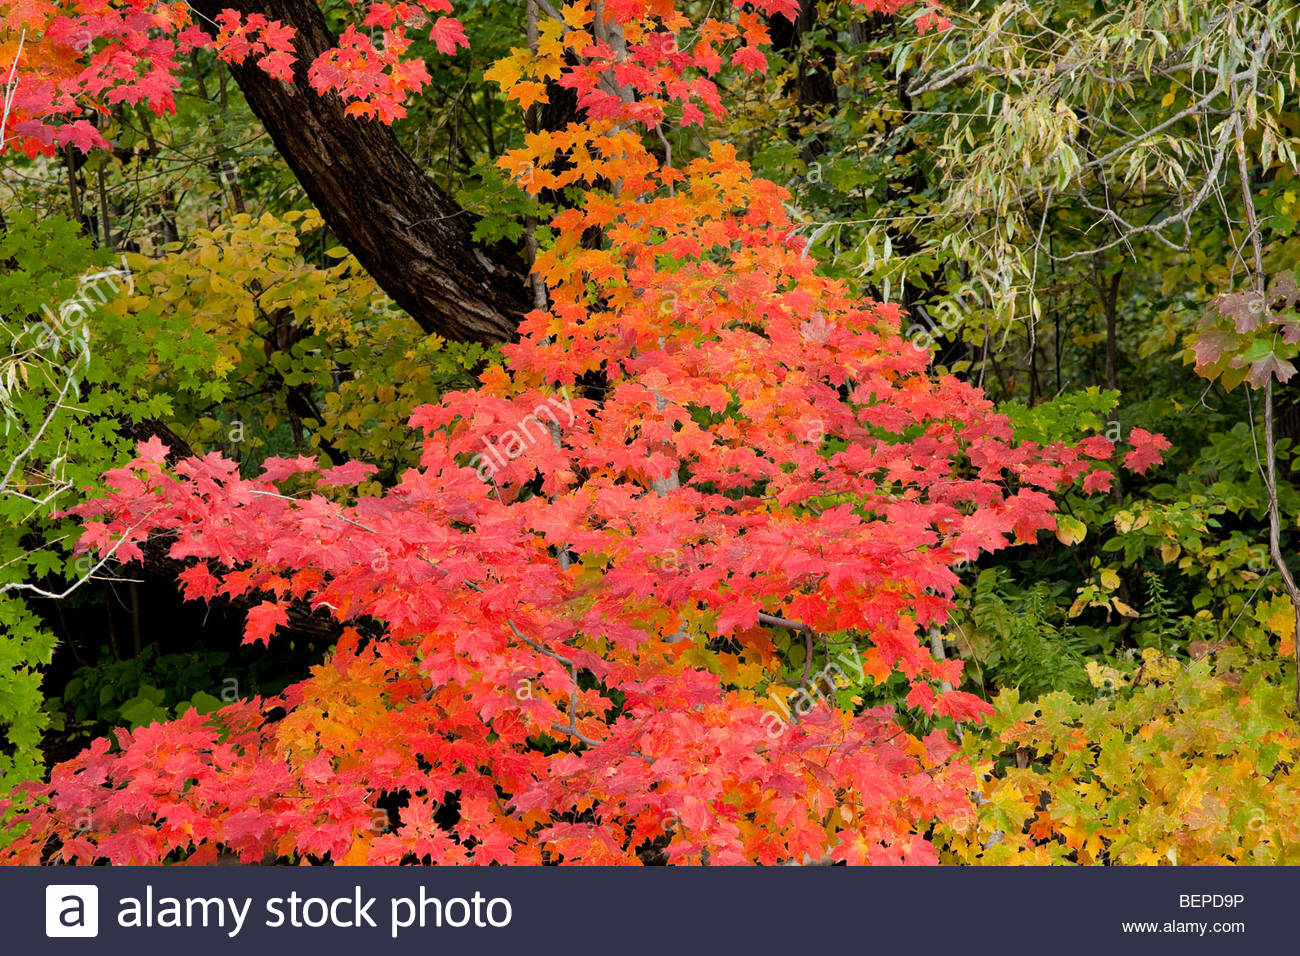 Maple leaf the symbol of Canada in autumn colours in Rouge Park an urban wilderness in Toronto Ontario Canada - Stock Image